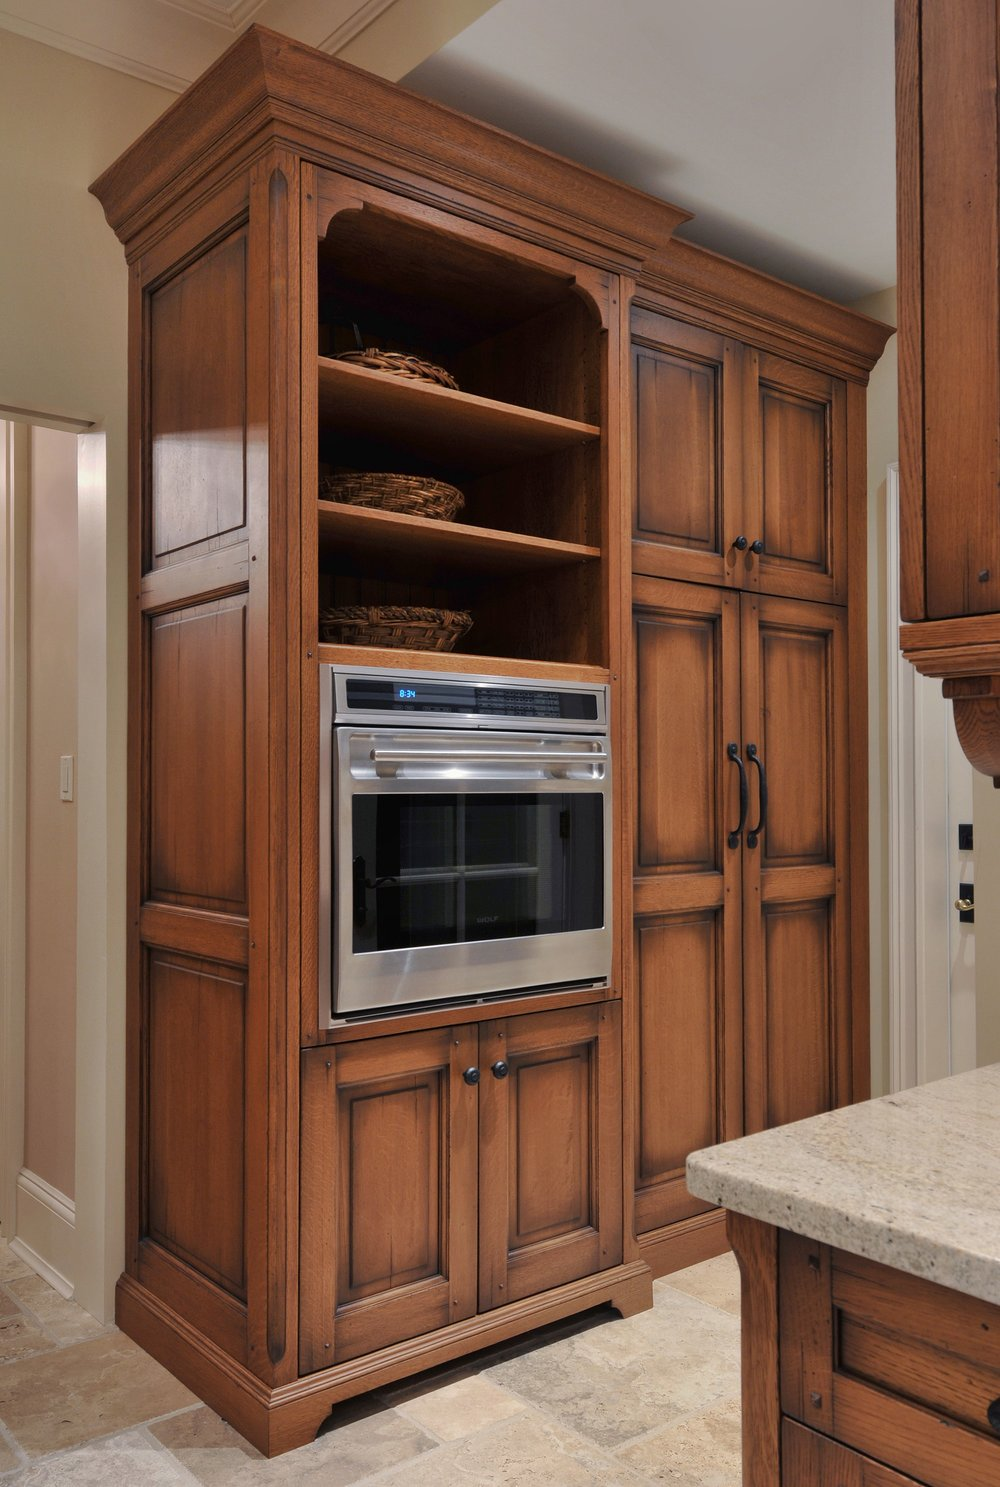 Traditional style kitchen with large and spacious cabinets